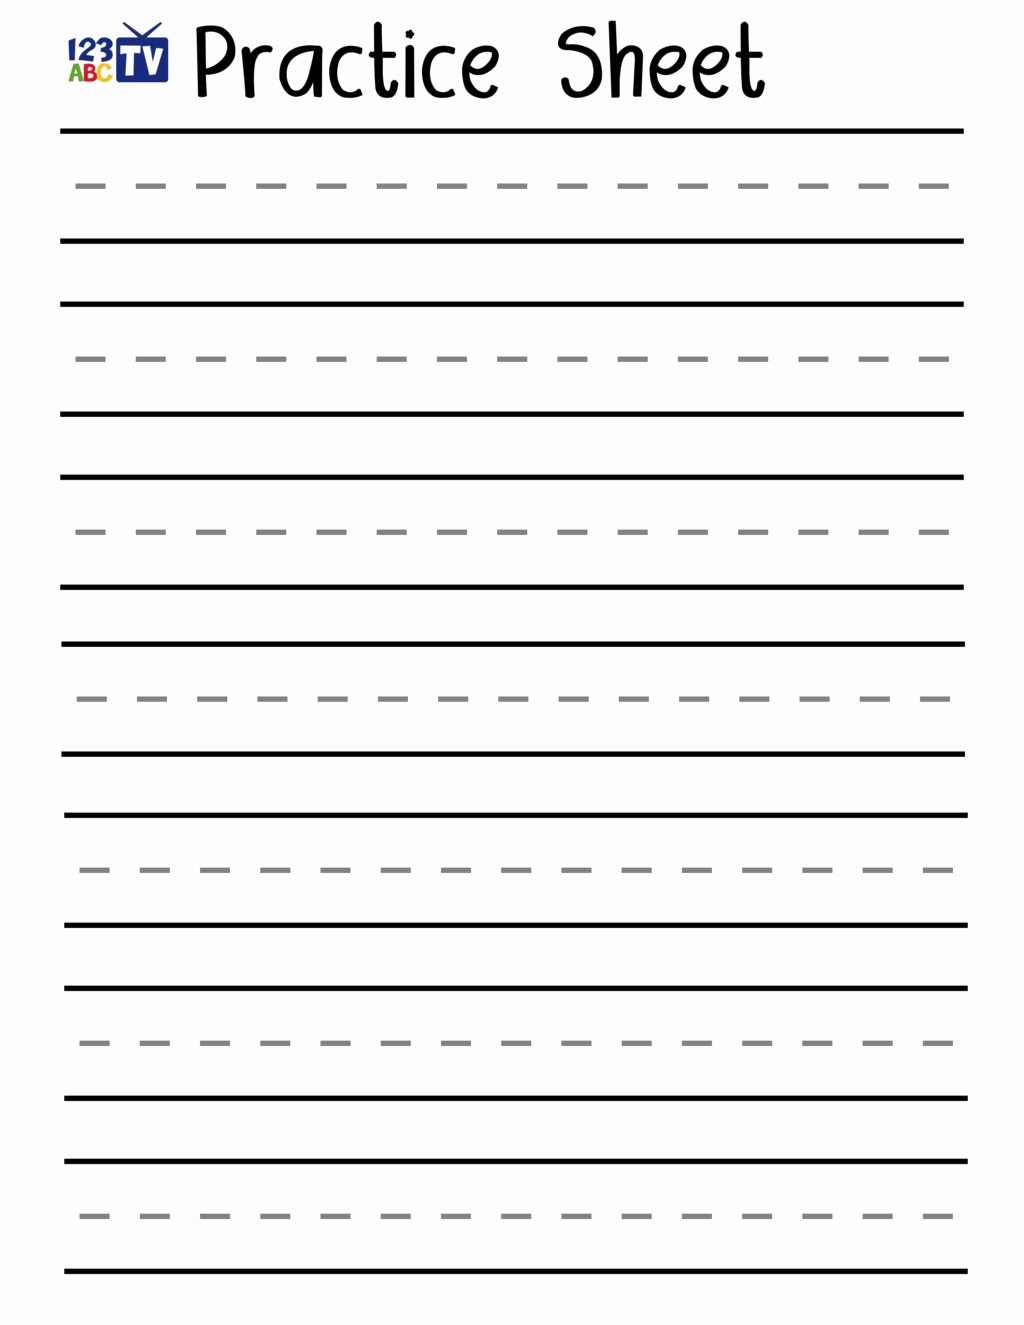 Slanting Lines Worksheets for Preschoolers New Worksheet Blankng Practice Sheets Sarete Worksheet Free